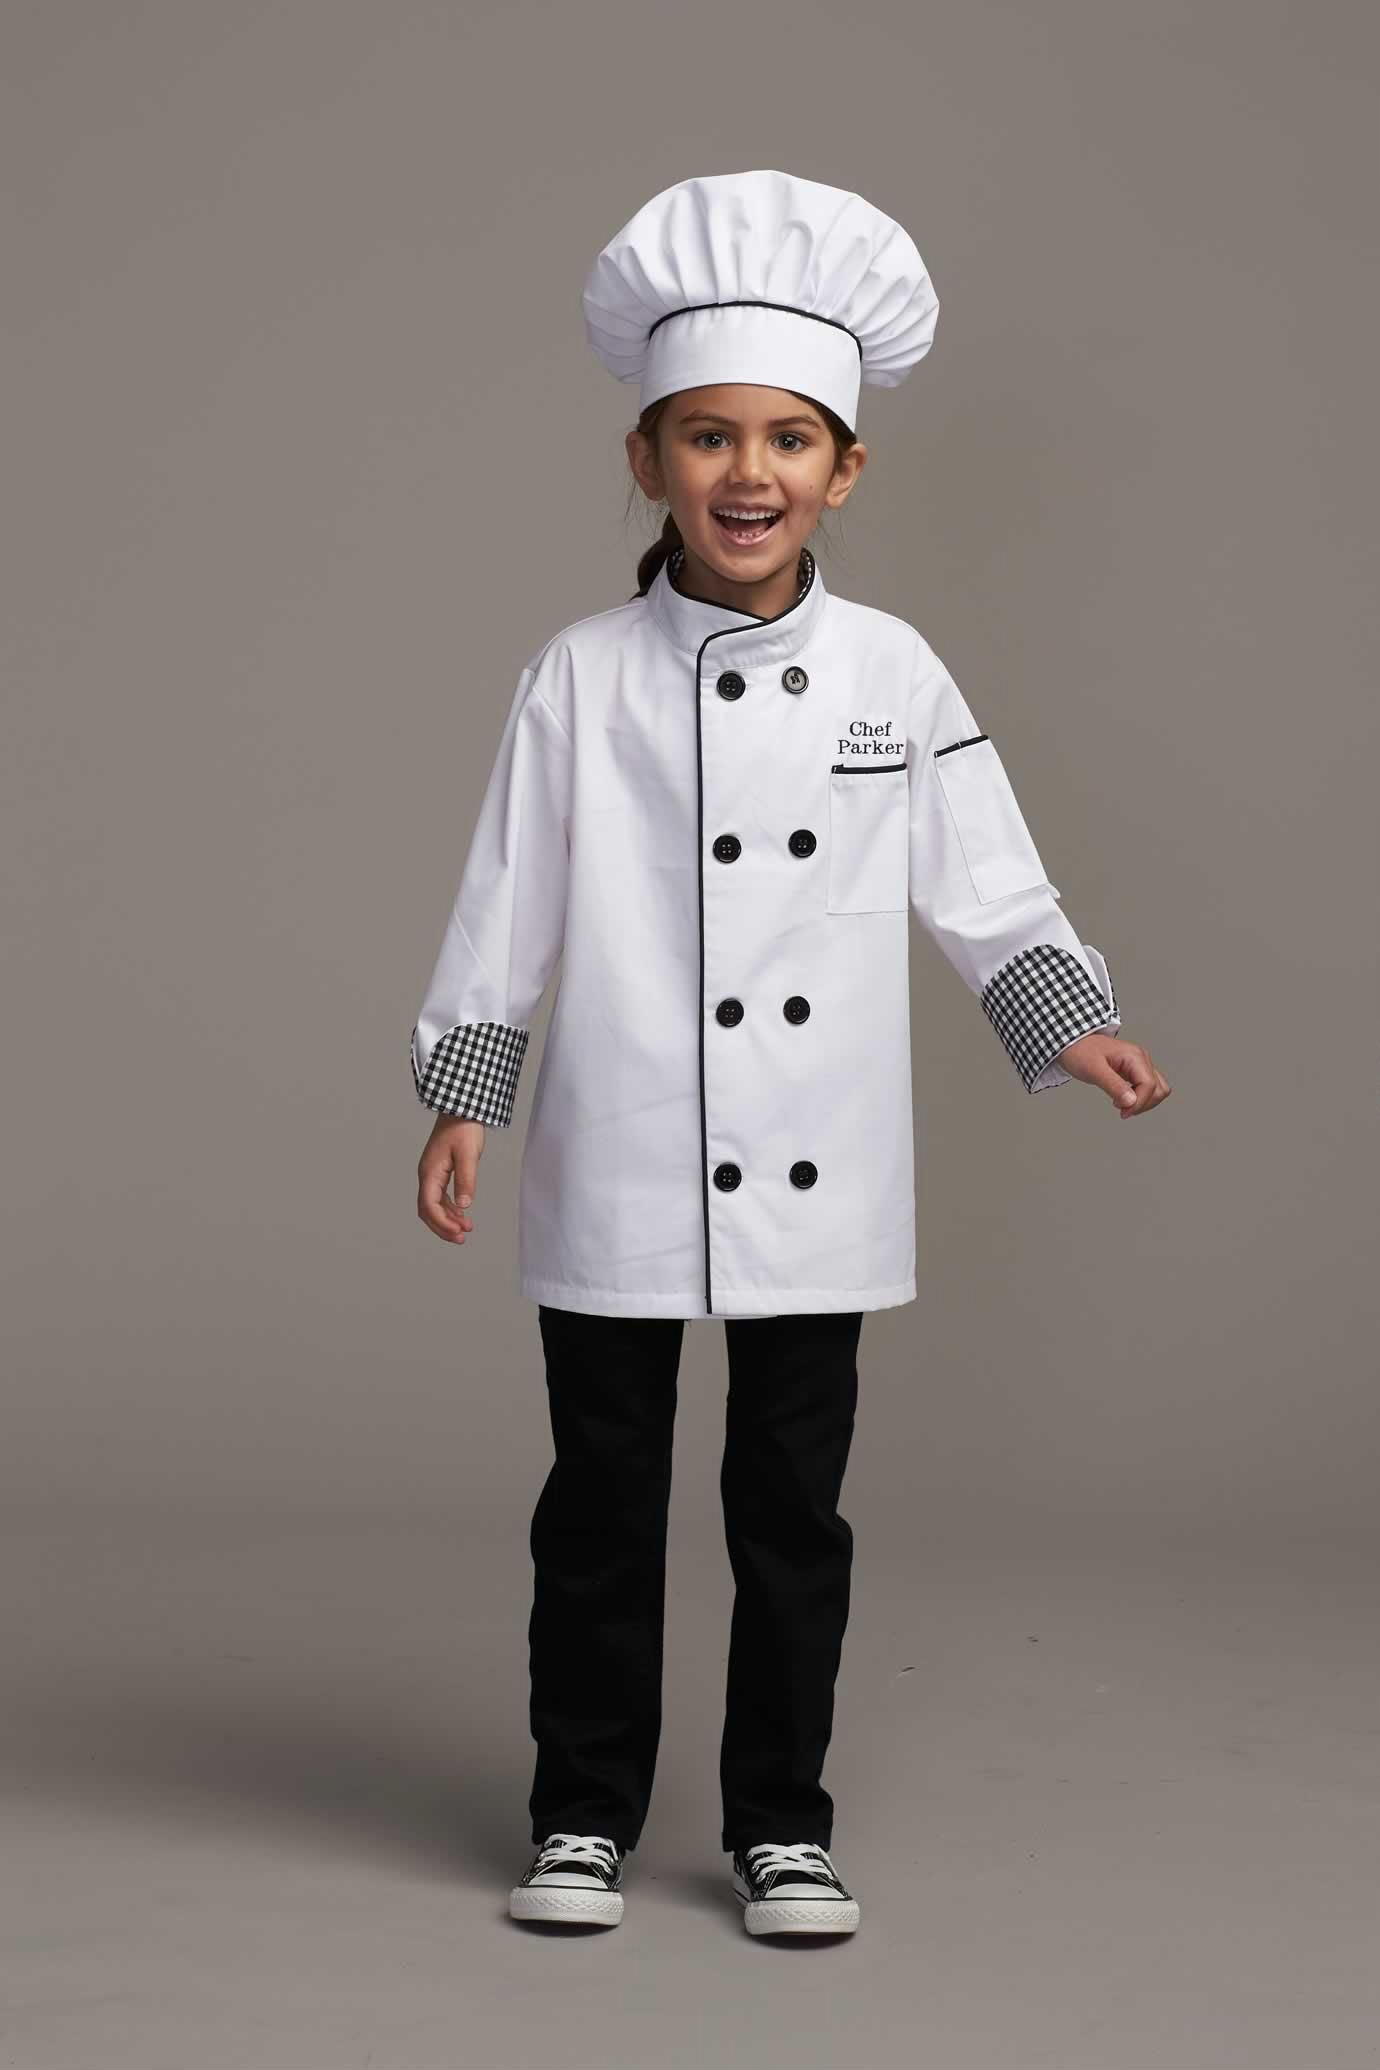 Personalized Chef Costume For Kids Chasing Fireflies Halloween